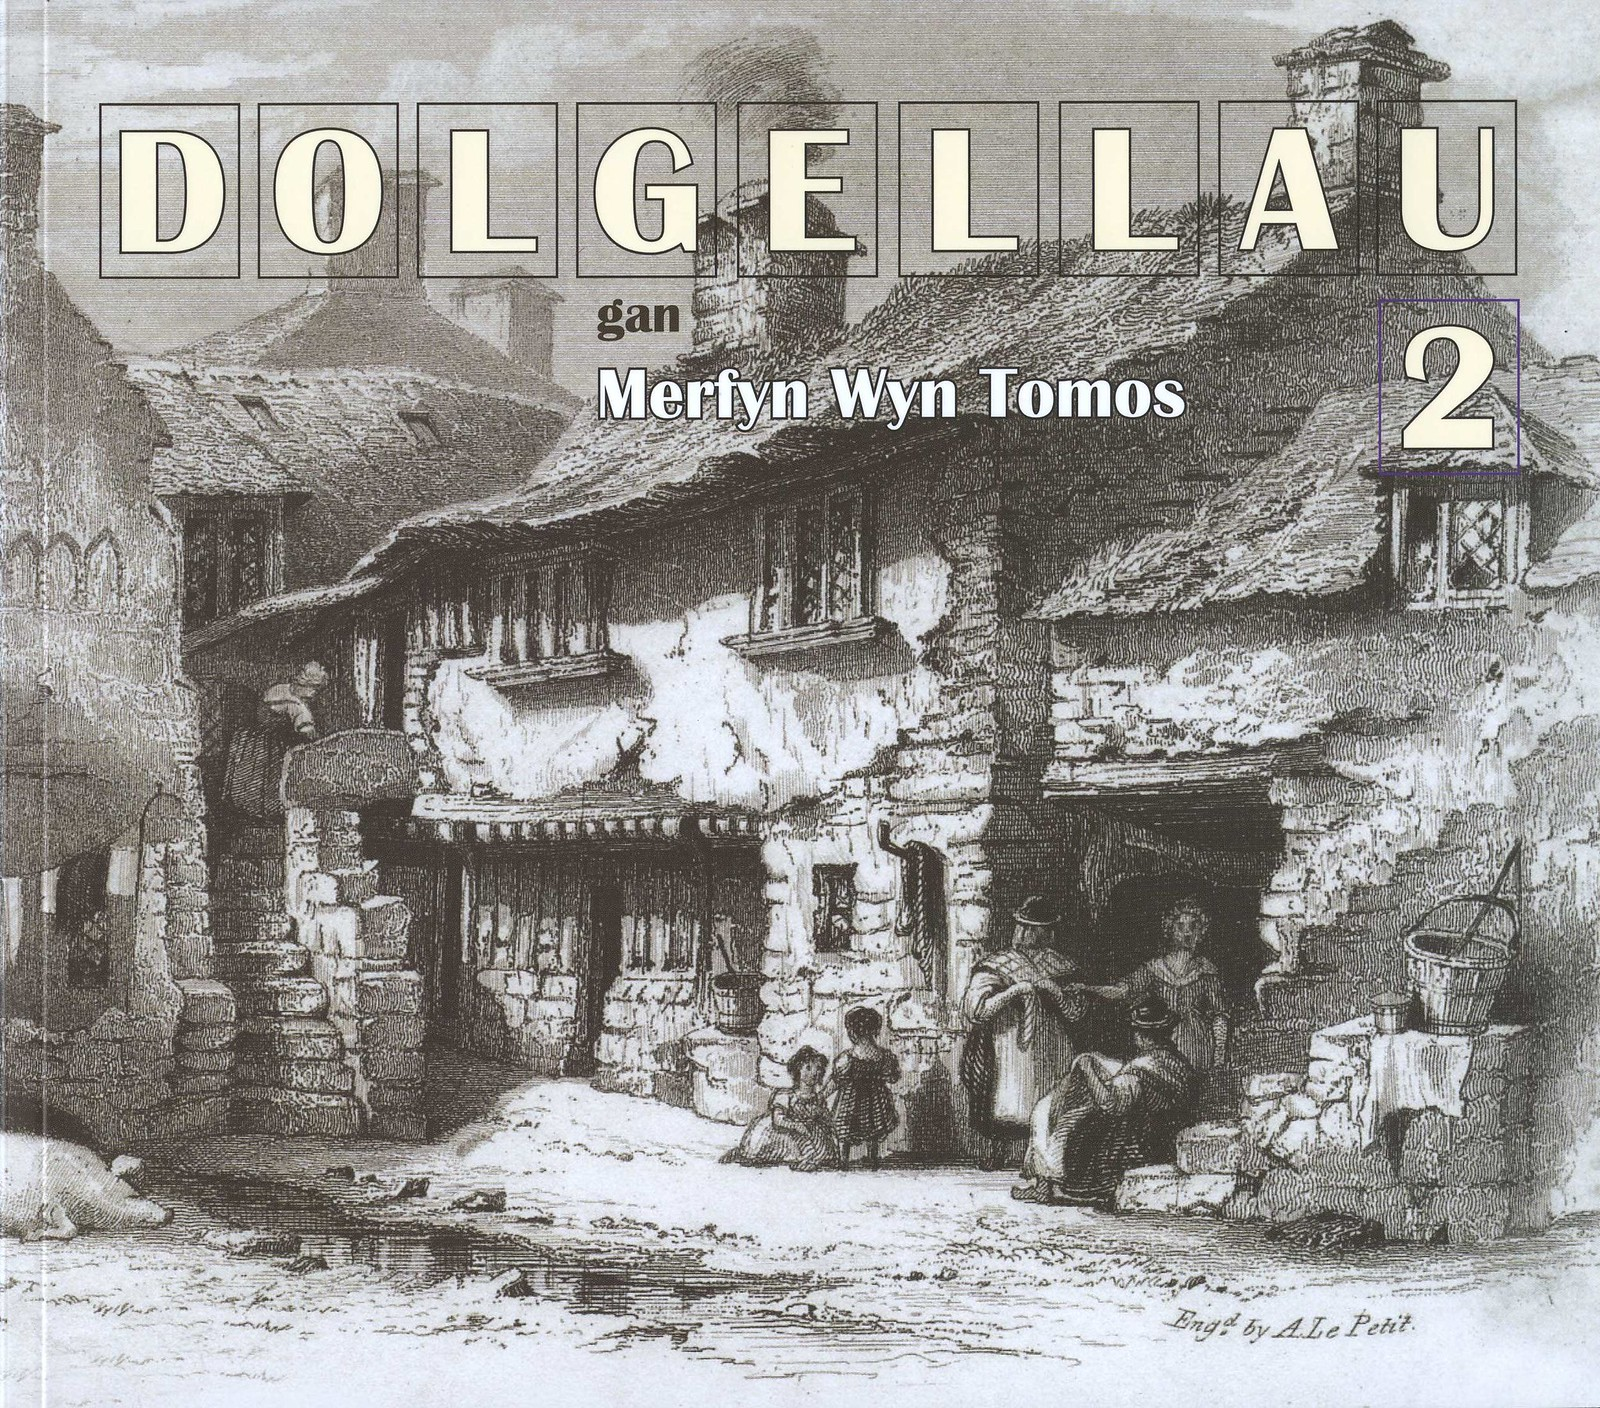 Dolgellau Book 2 (2013) Front Cover